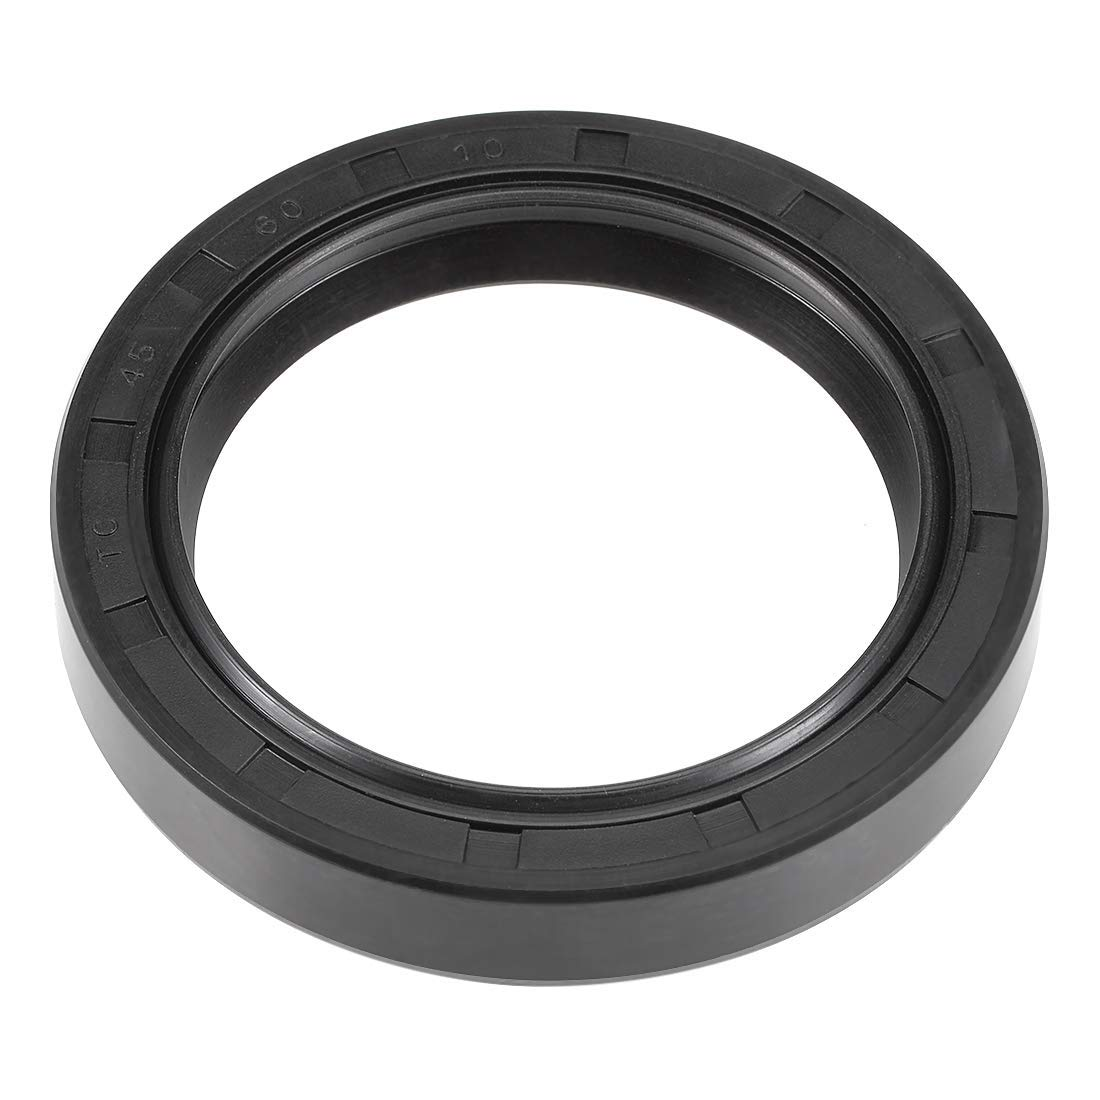 TC 45 mm x 60 mm x 10 mm Double Lip Nitrile Rubber Cover Oil Seal